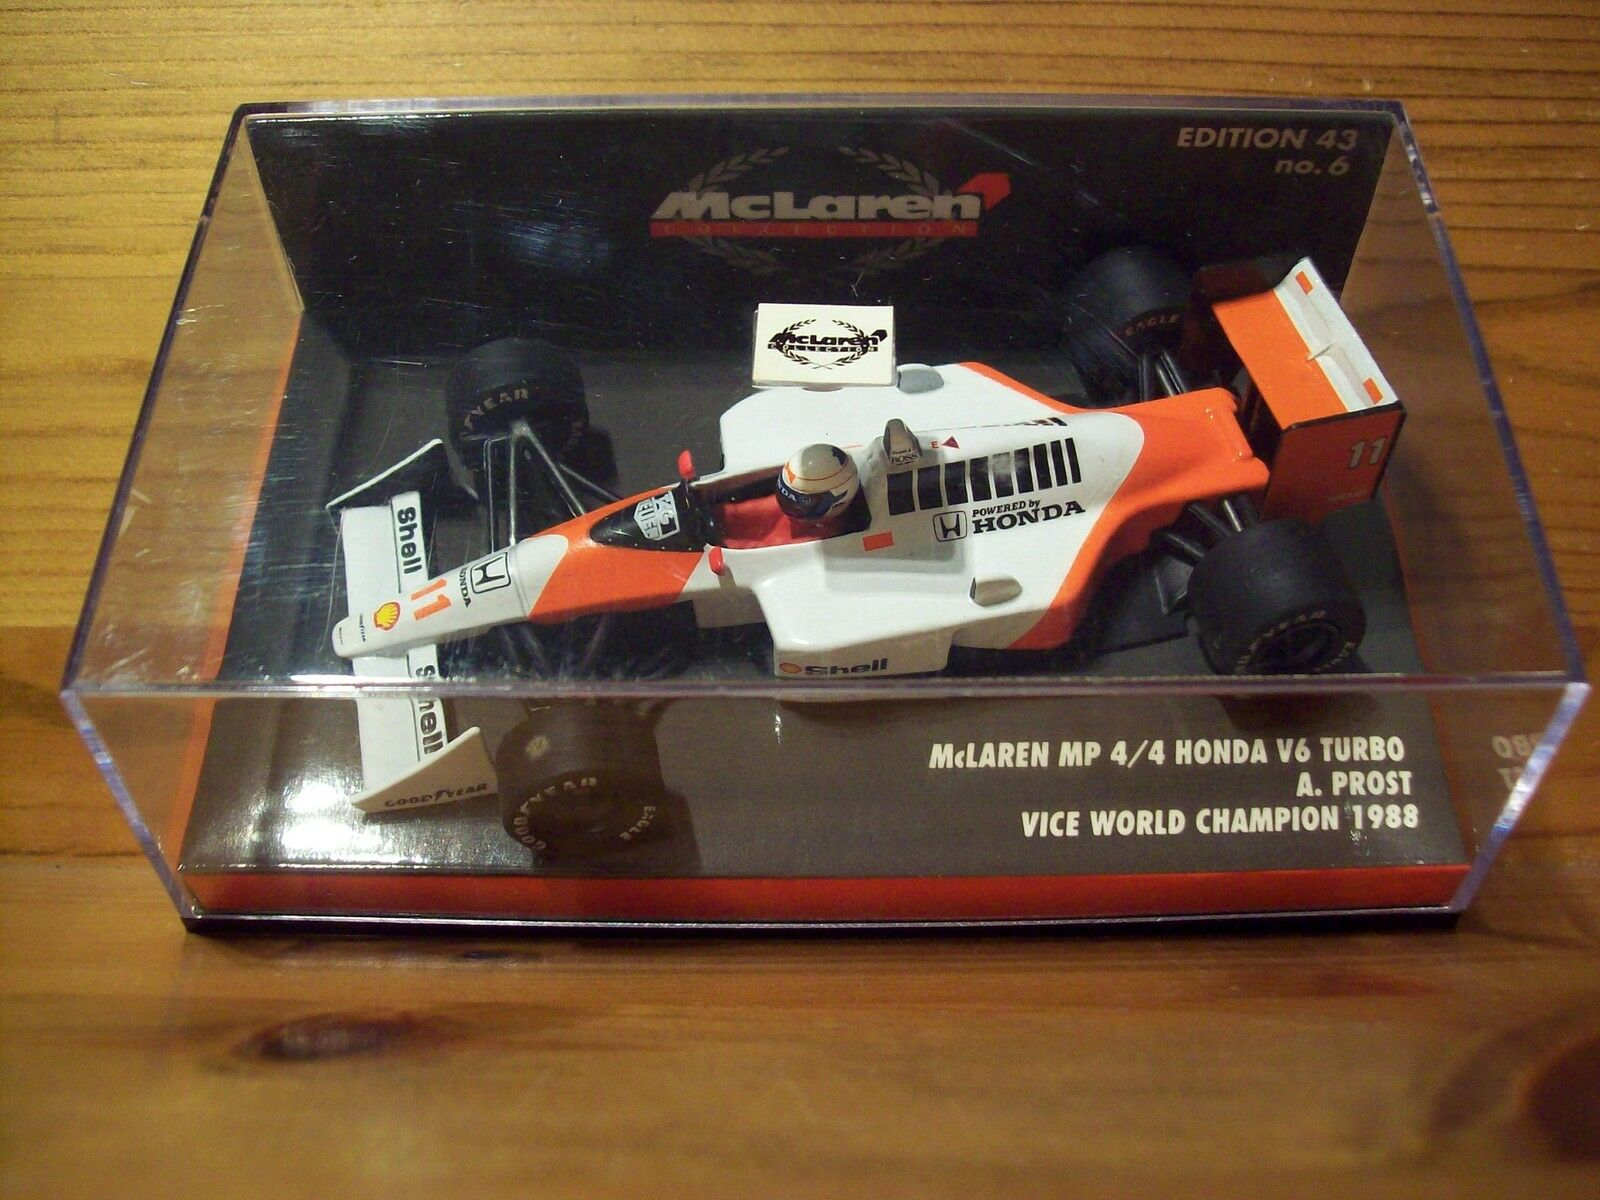 1 43 MCLAREN MP4 4 Honda V6 TURBO ALAIN PROST 1988 VICE WORLD CHAMPION